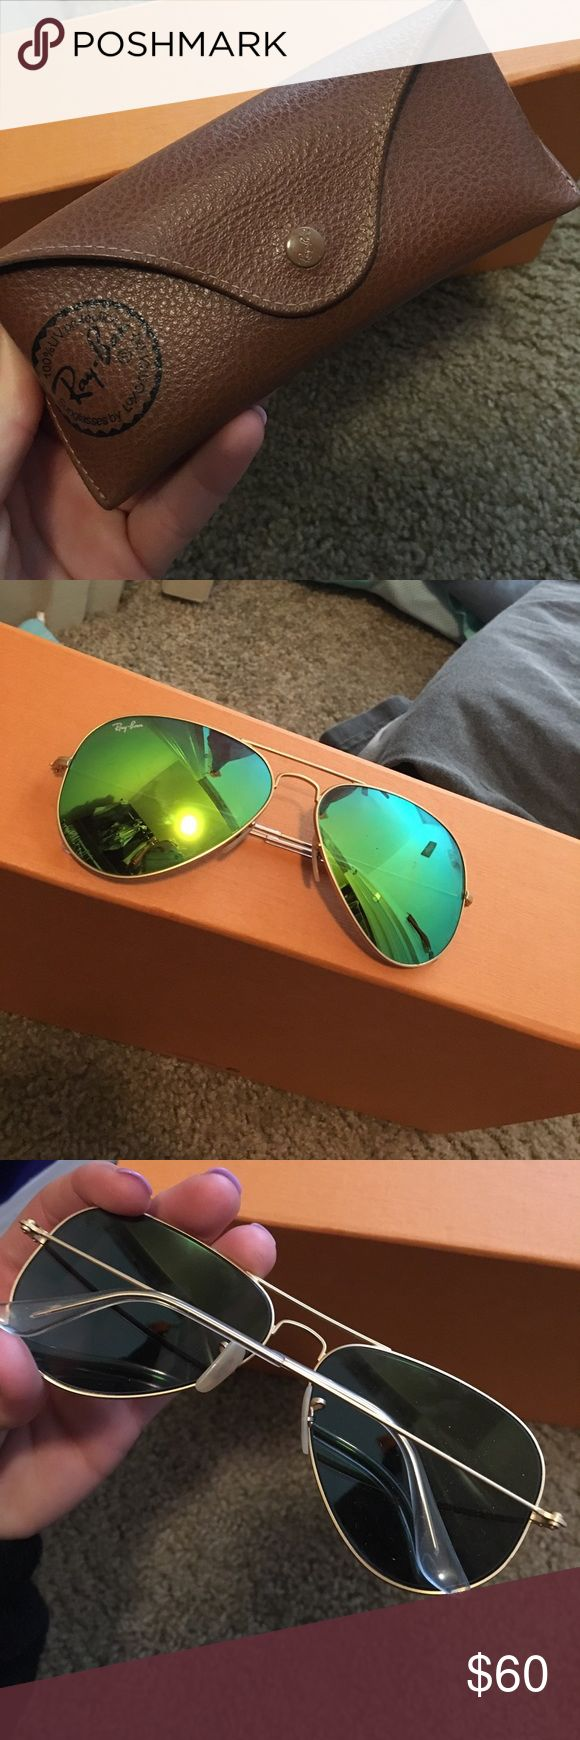 Ray Ban aviator sunglasses Authentic ray bans, green lenses, a couple scratches, but not very noticeable. Comes with case. Ray-Ban Accessories Sunglasses